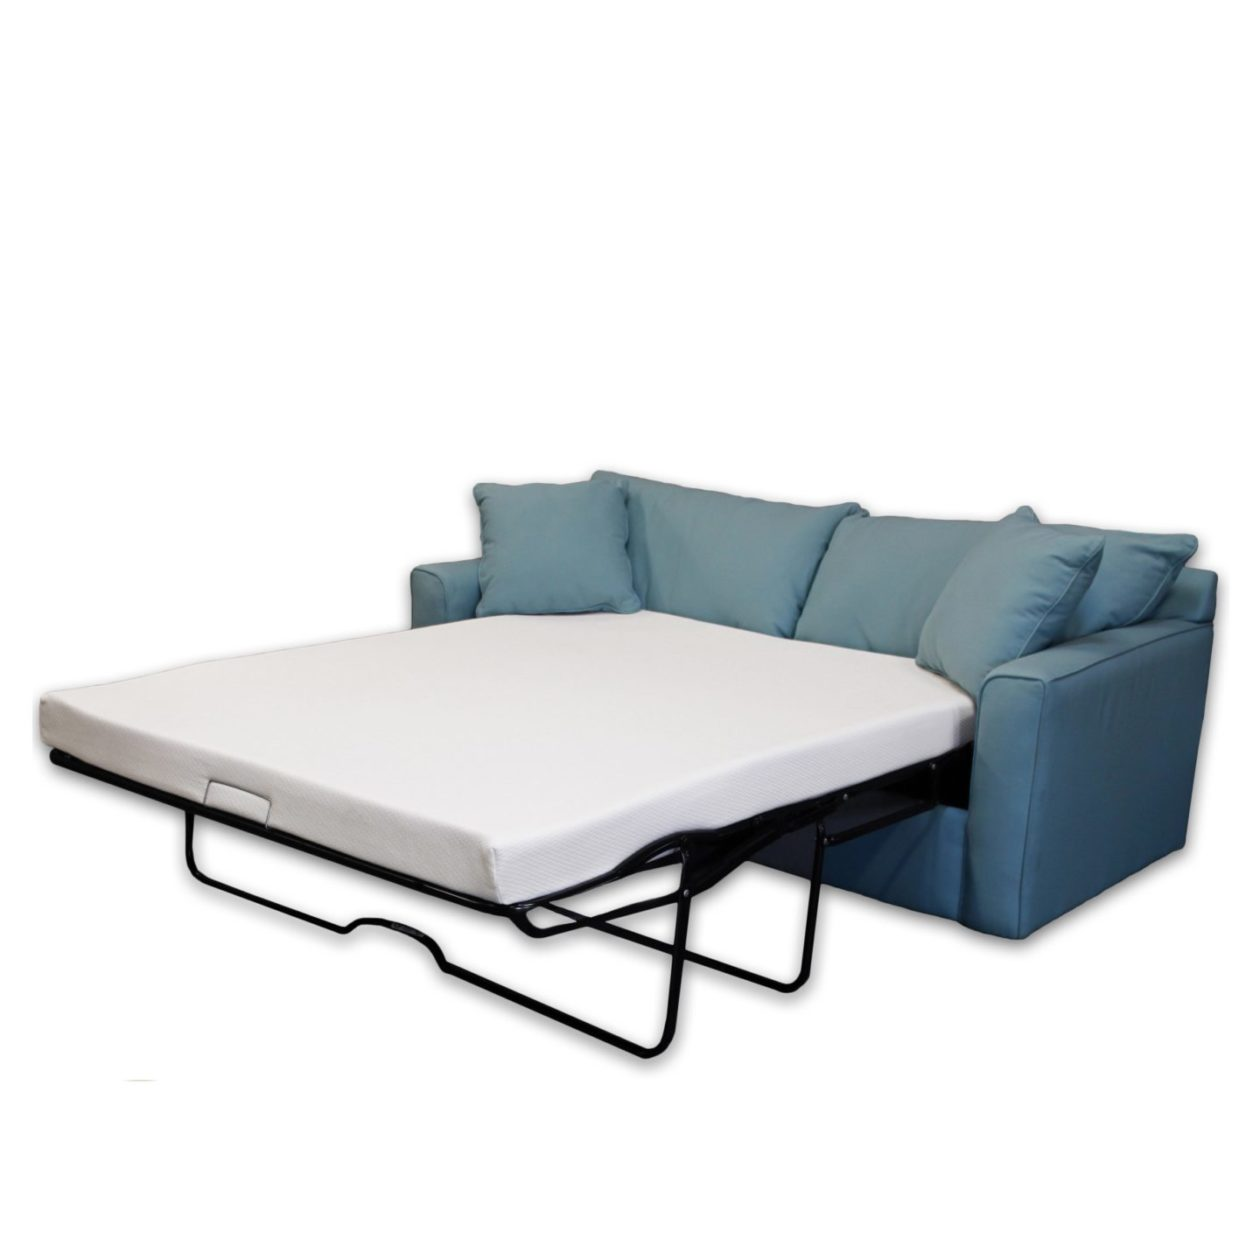 How to Make a Pull Out Sofa Bed More Comfortable ...